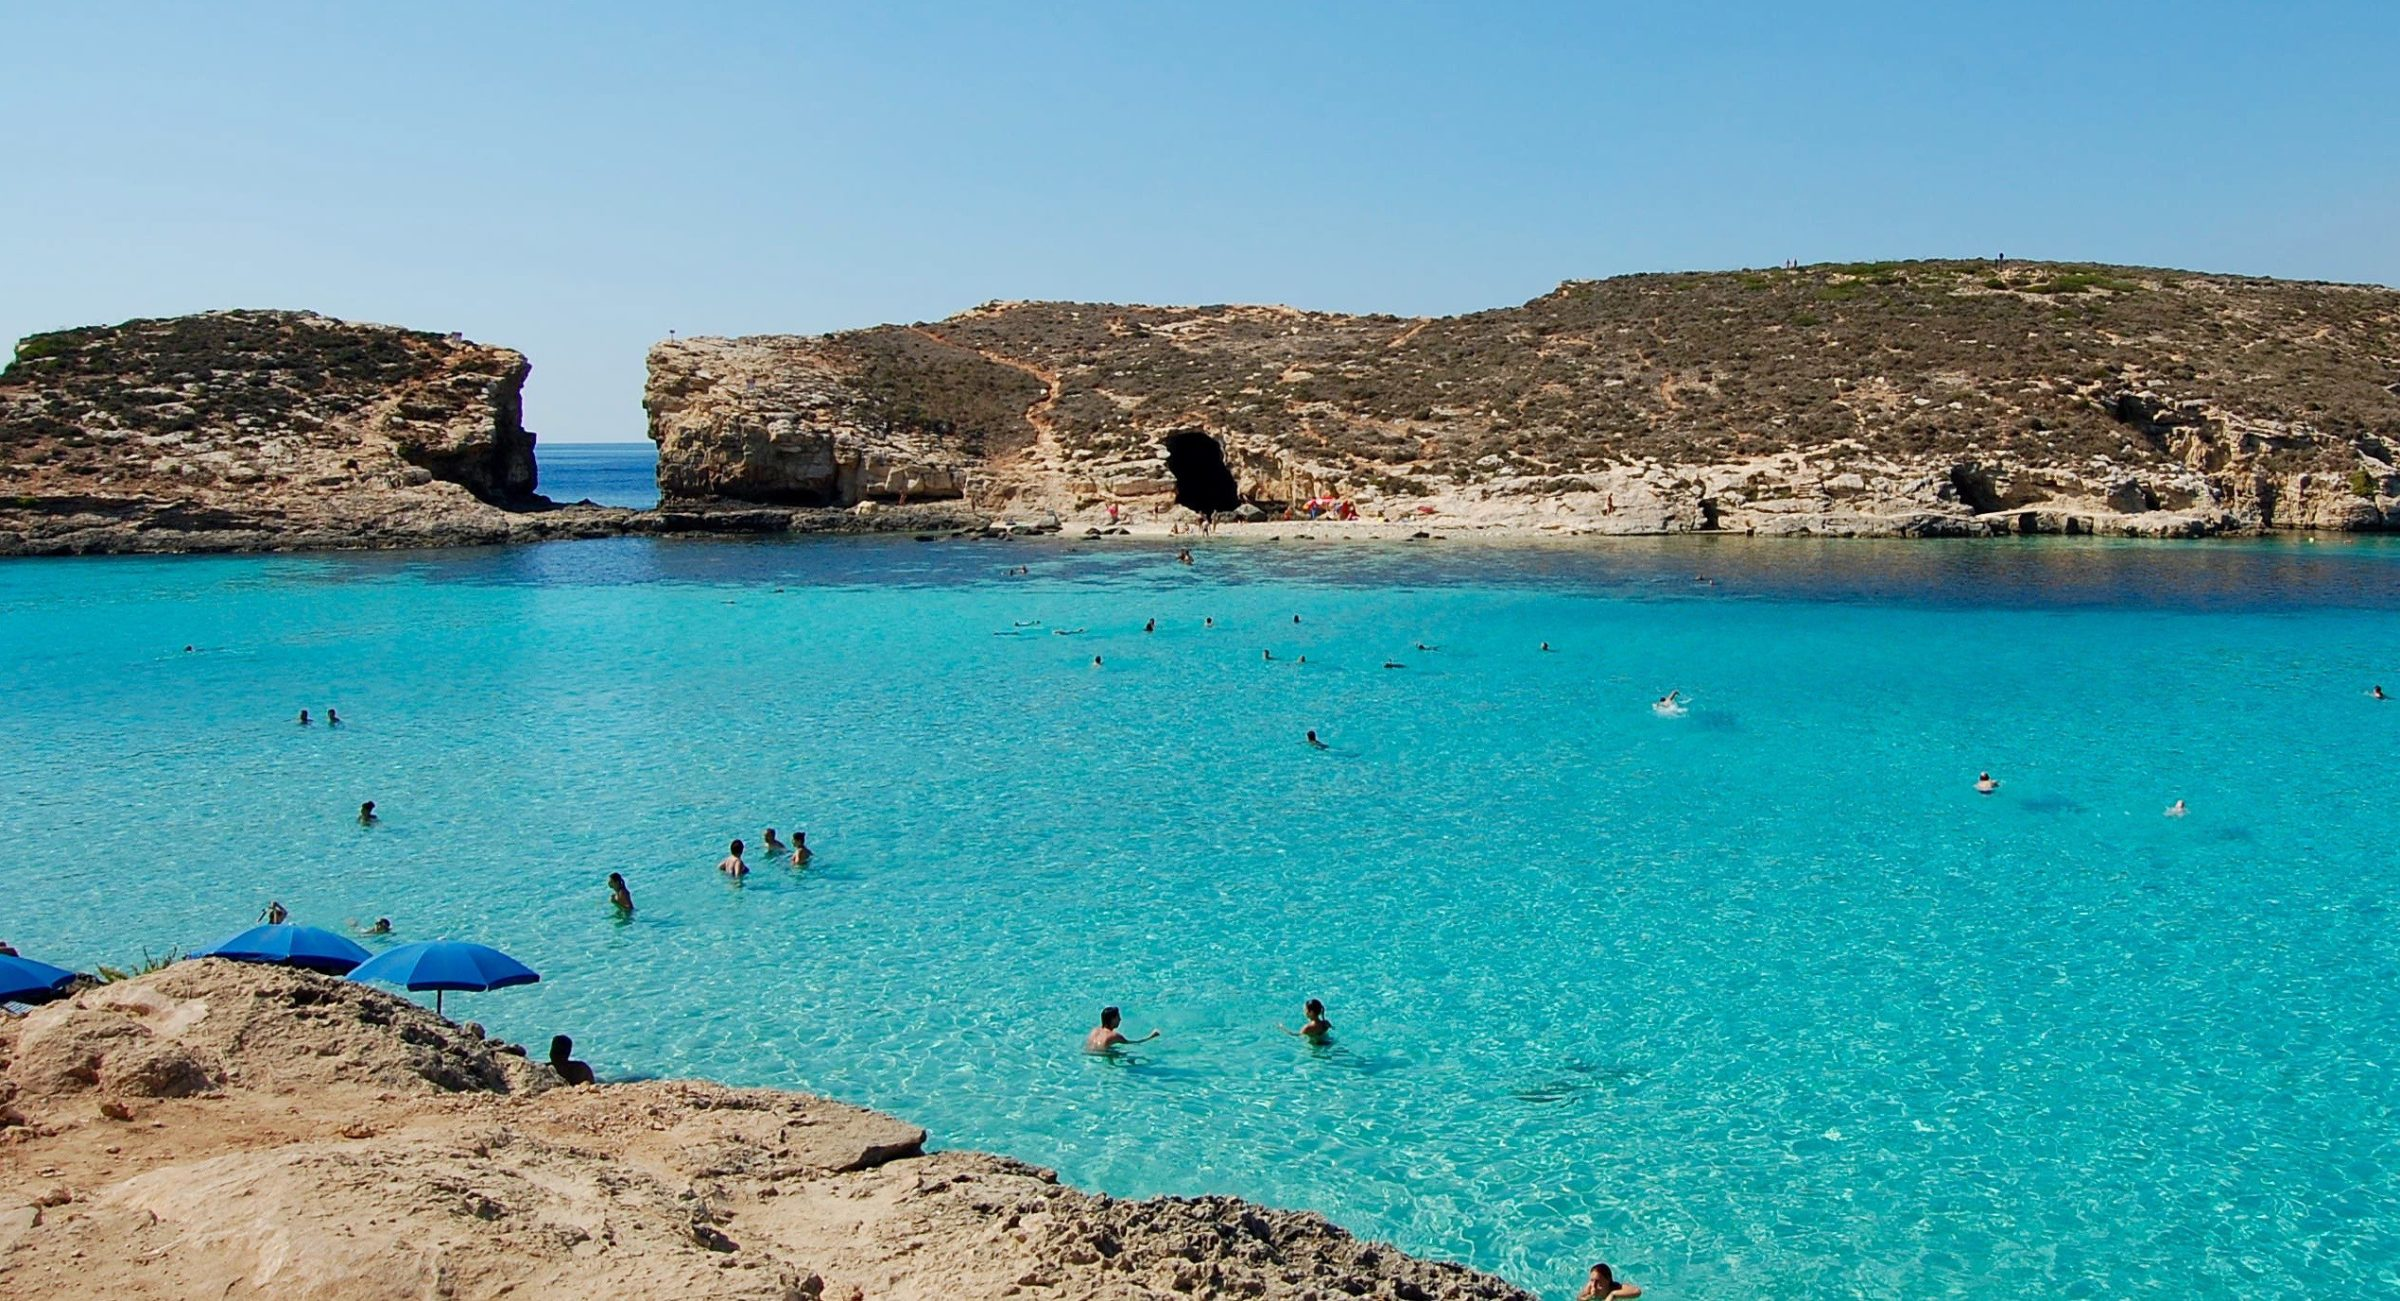 Amazing Boat Charters - Boat Charters for Malta, Gozo and Comino